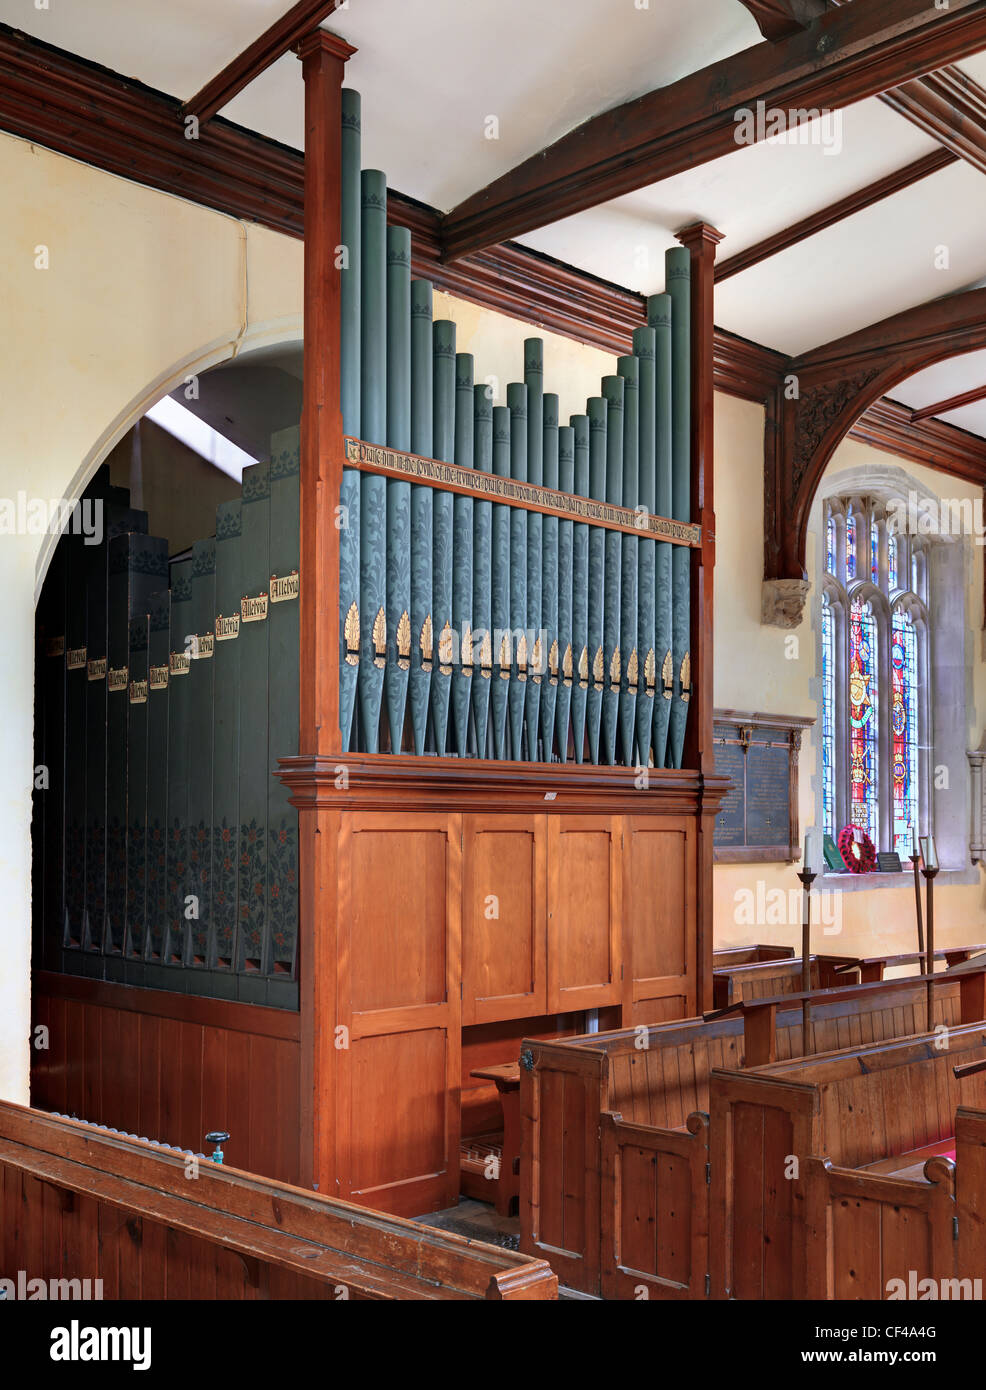 The pipe organ in St. Mary Magdalene Church in Barkway. - Stock Image